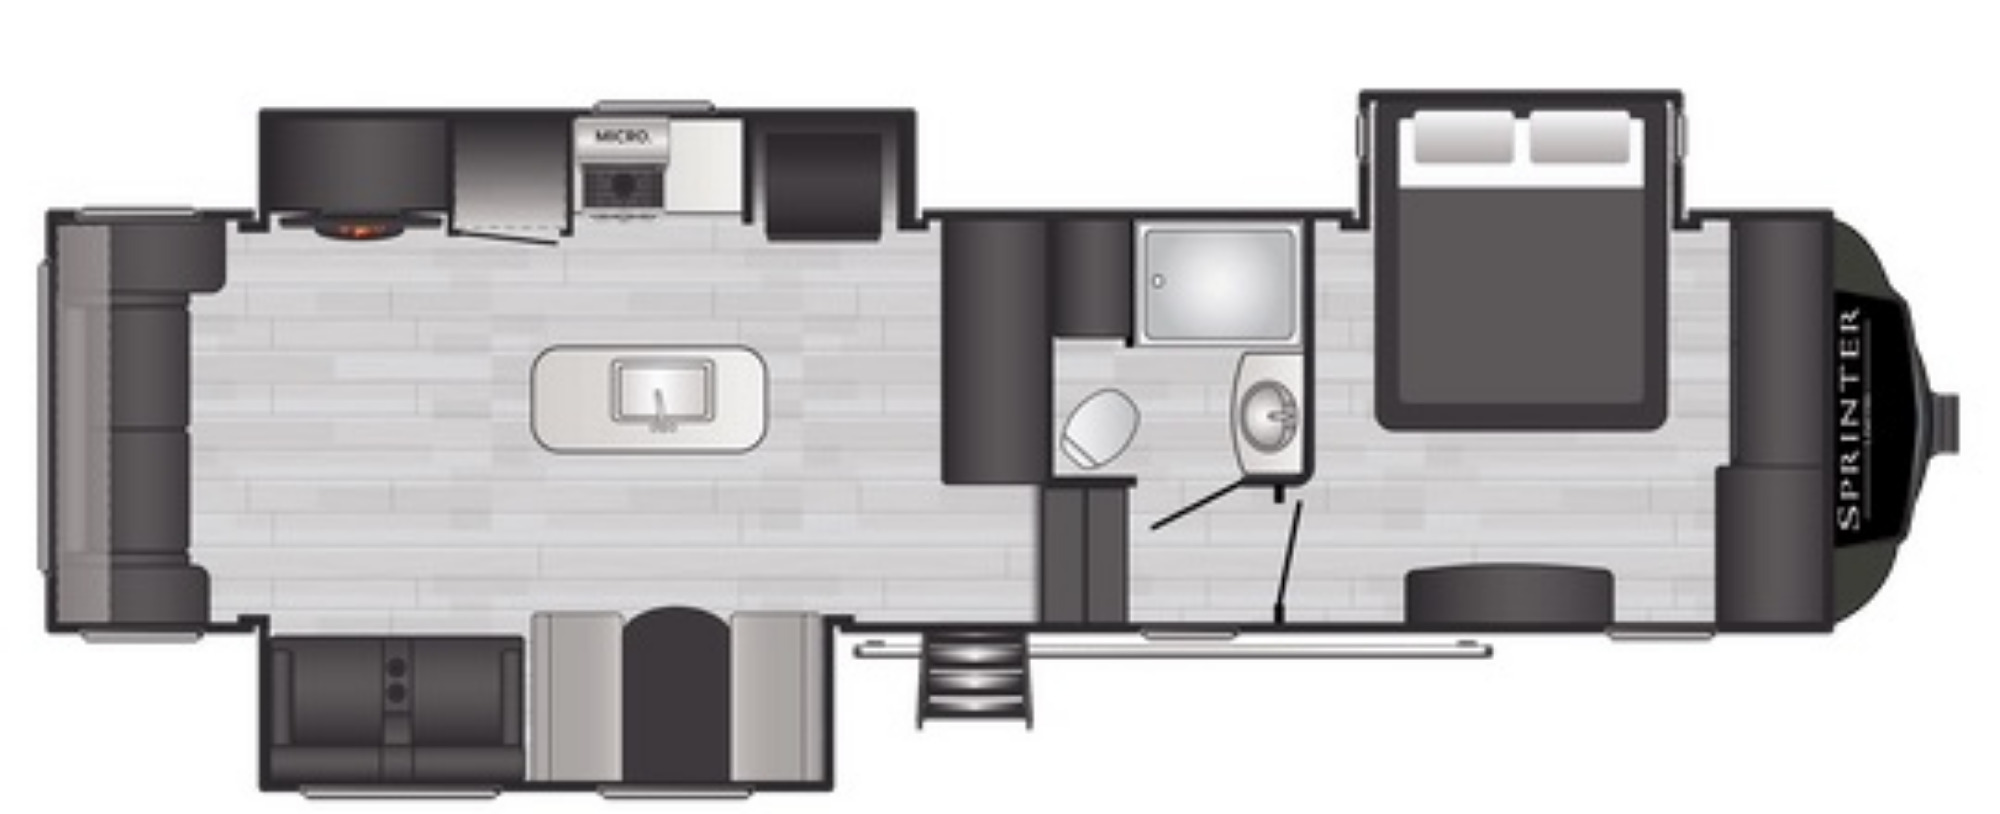 View Floor Plan for 2021 KEYSTONE SPRINTER LIMITED 3190RLS